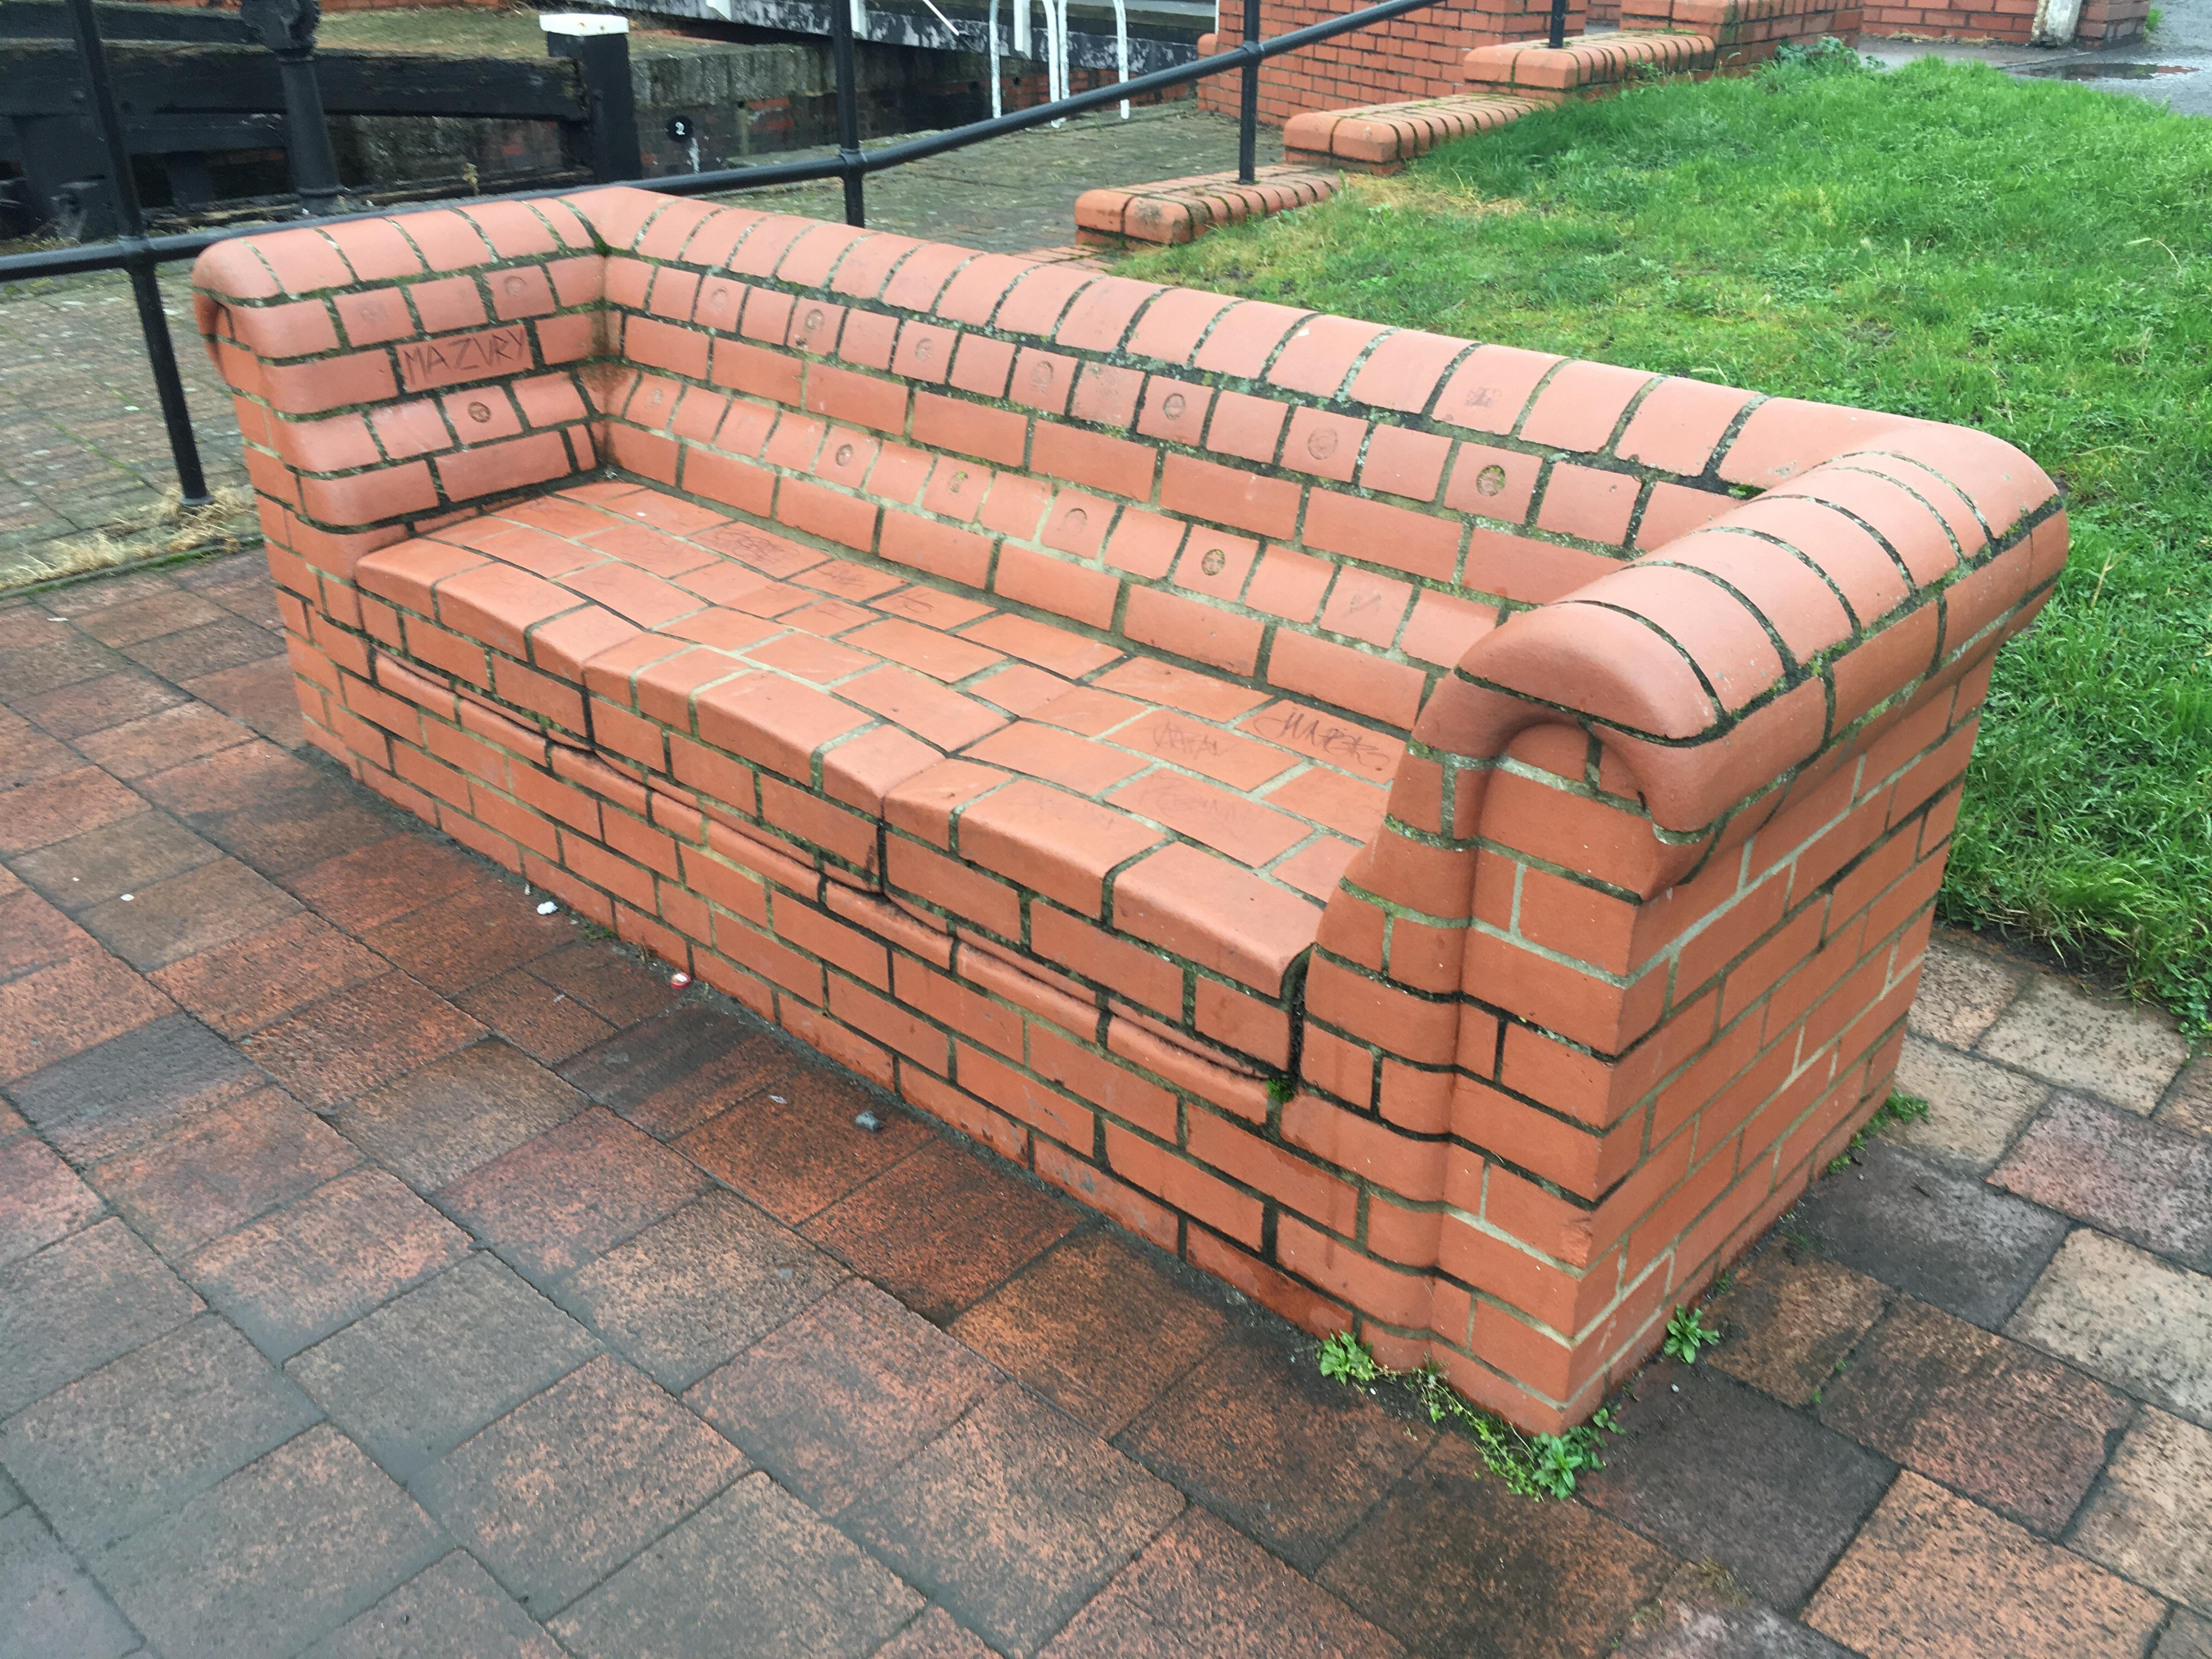 Sofa Couch Reddit This Brick Couch Mildlyinteresting